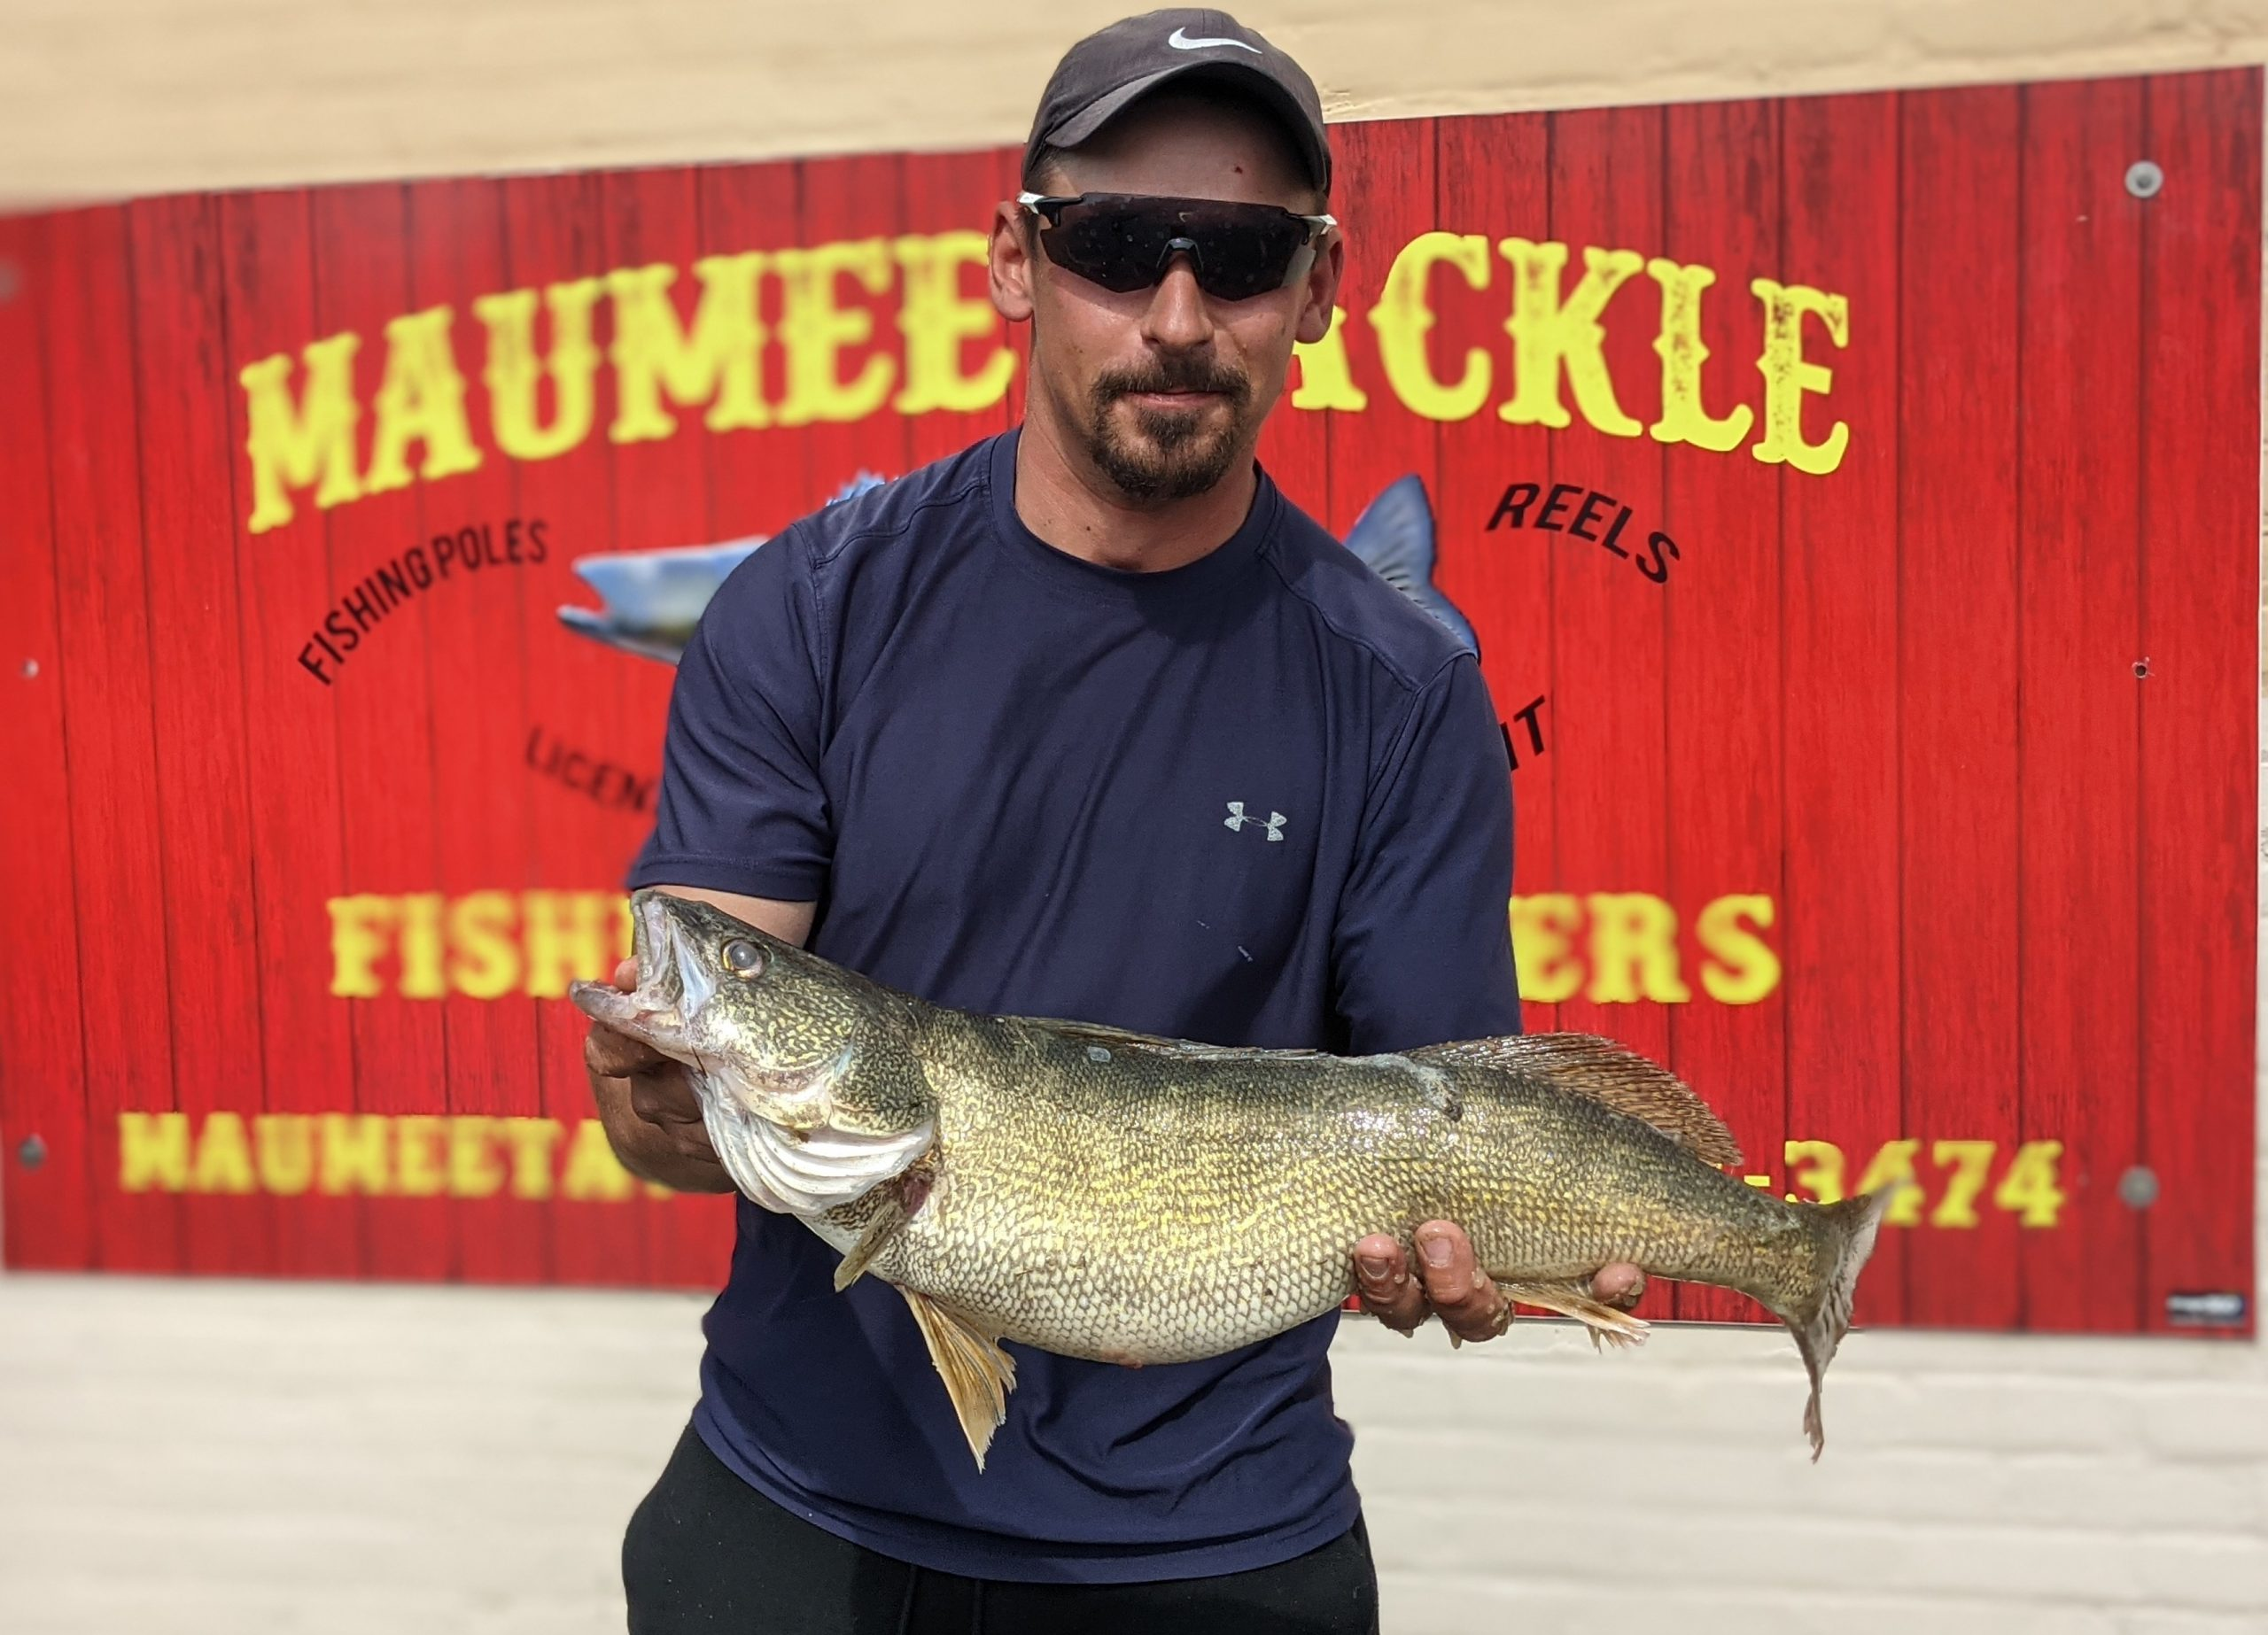 maumee river report- may 3 ,2021